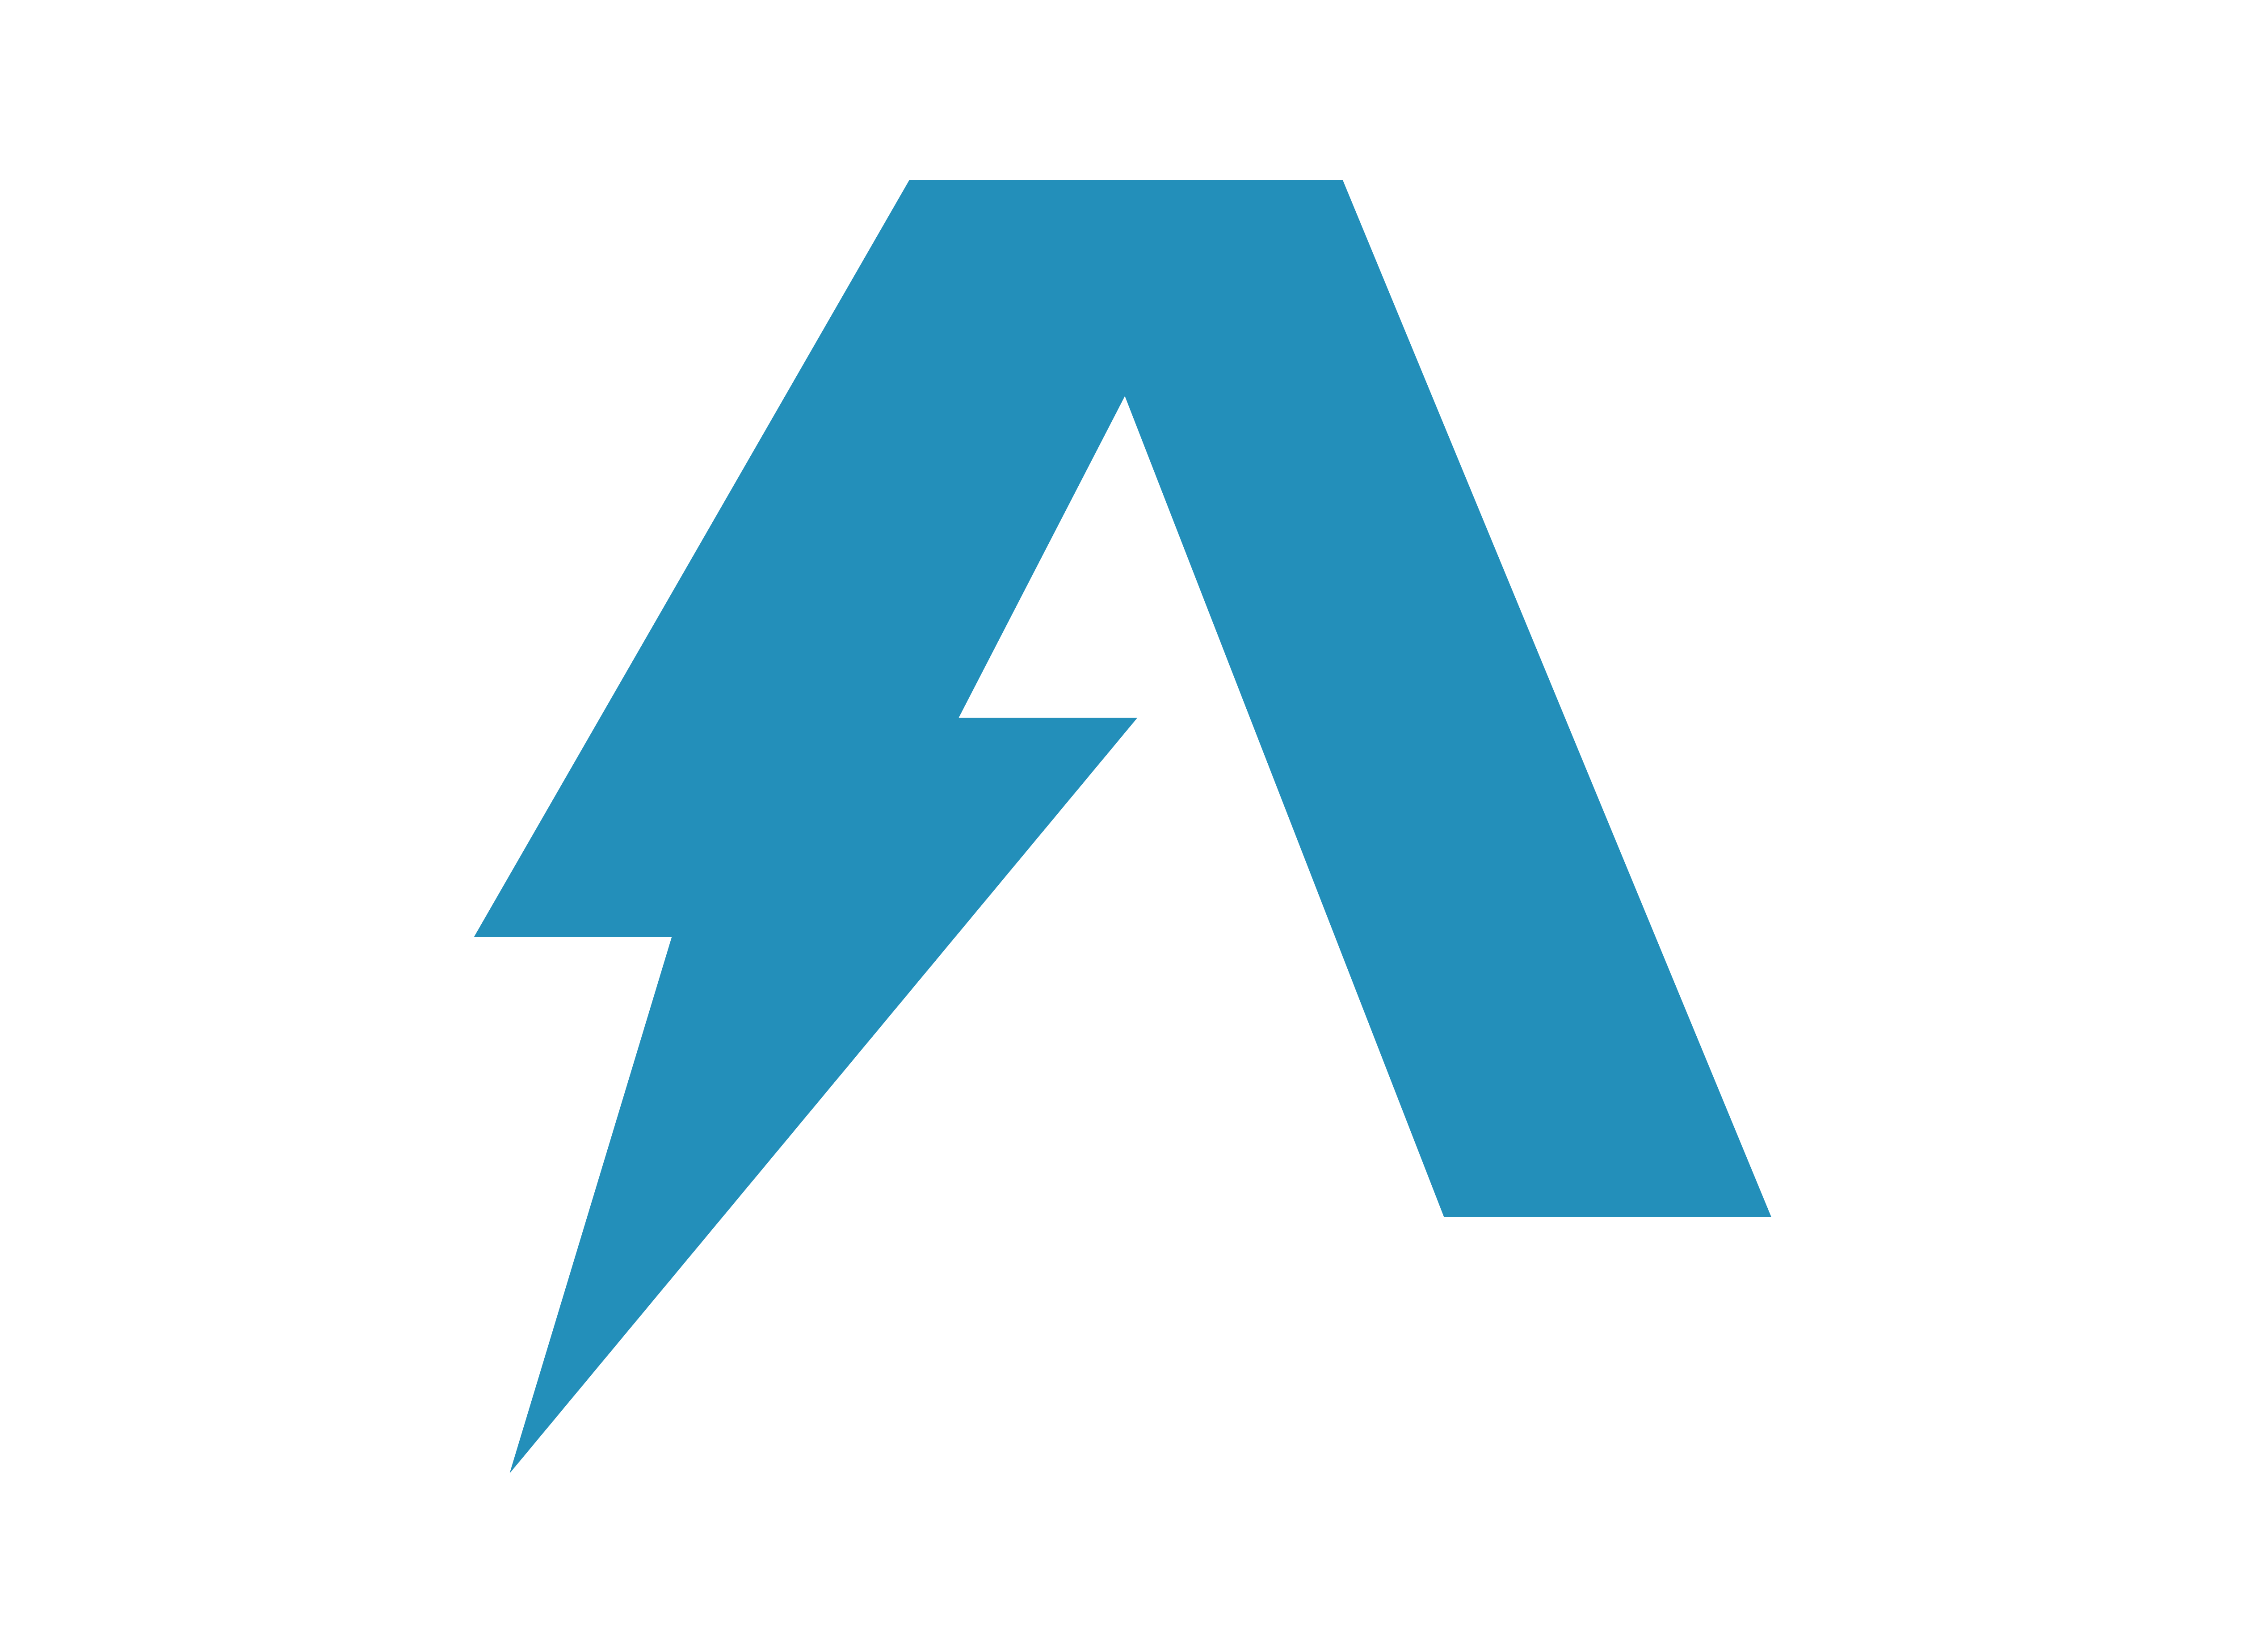 ABLE POWER MANAGEMENT OPENS HOUSTON OFFICE AS BASE FOR NATIONAL ENERGY CONSULTING AND BROKERING SERVICES